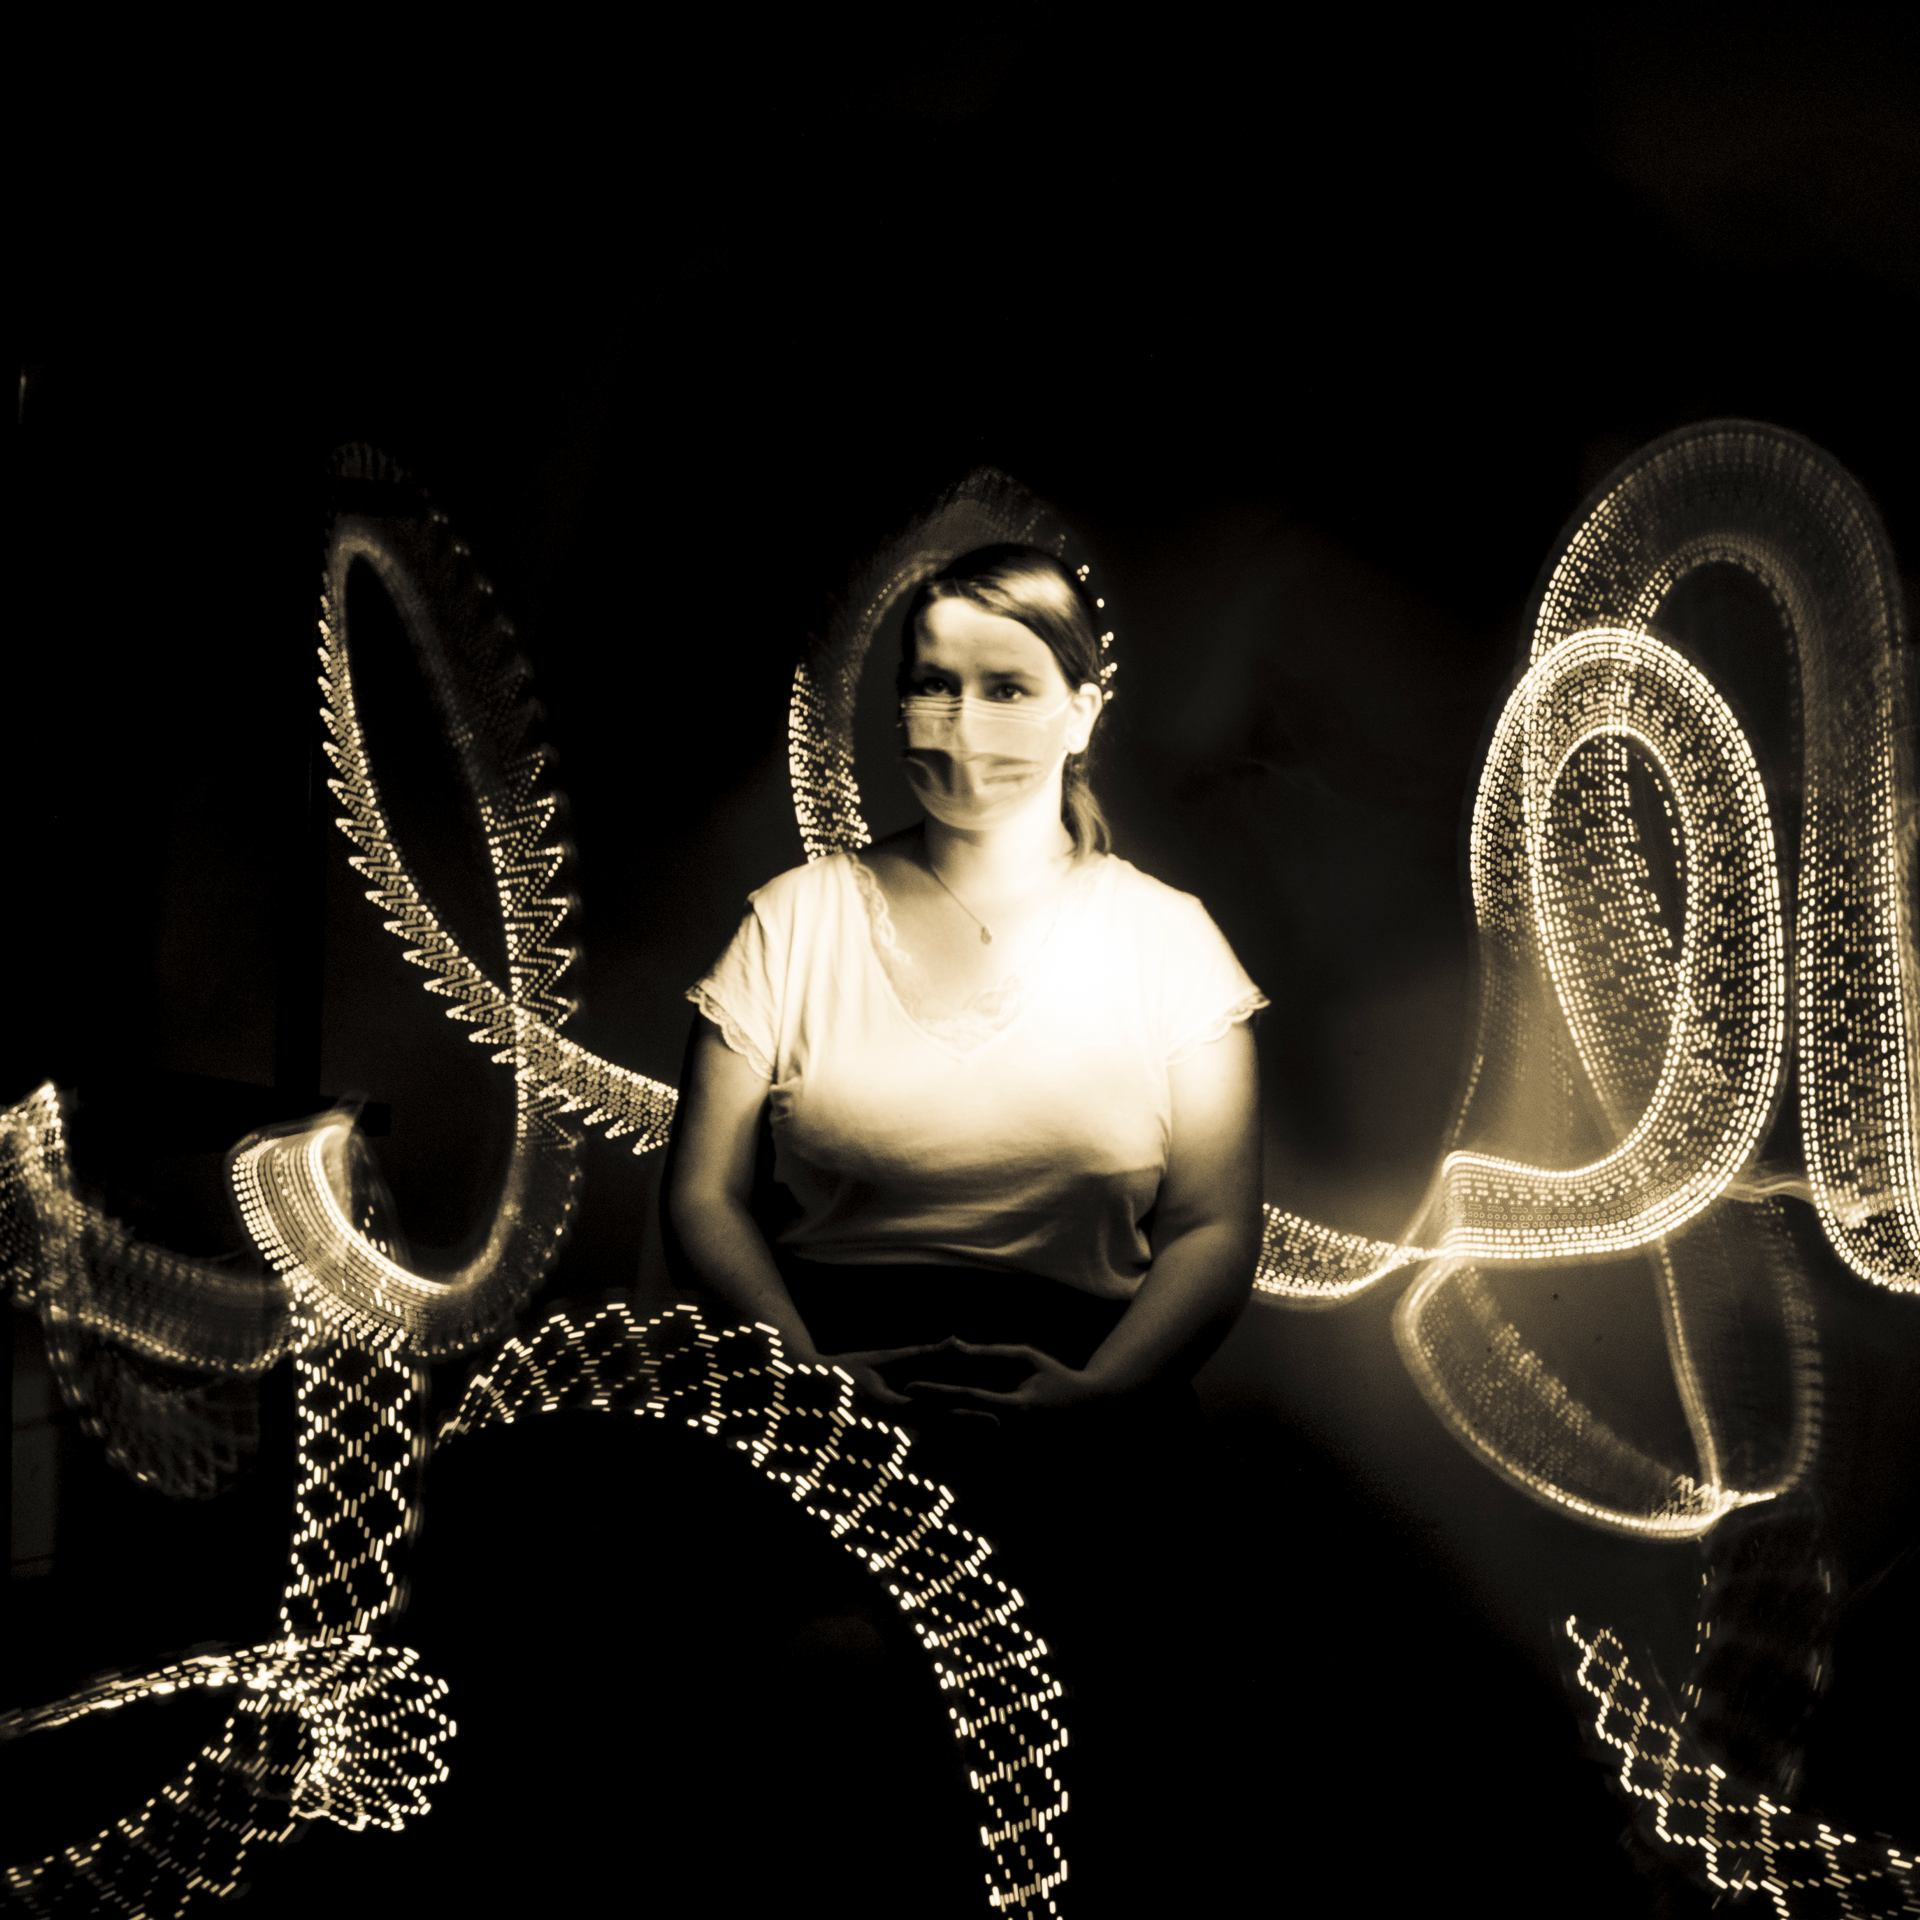 Portrait au lightpainting